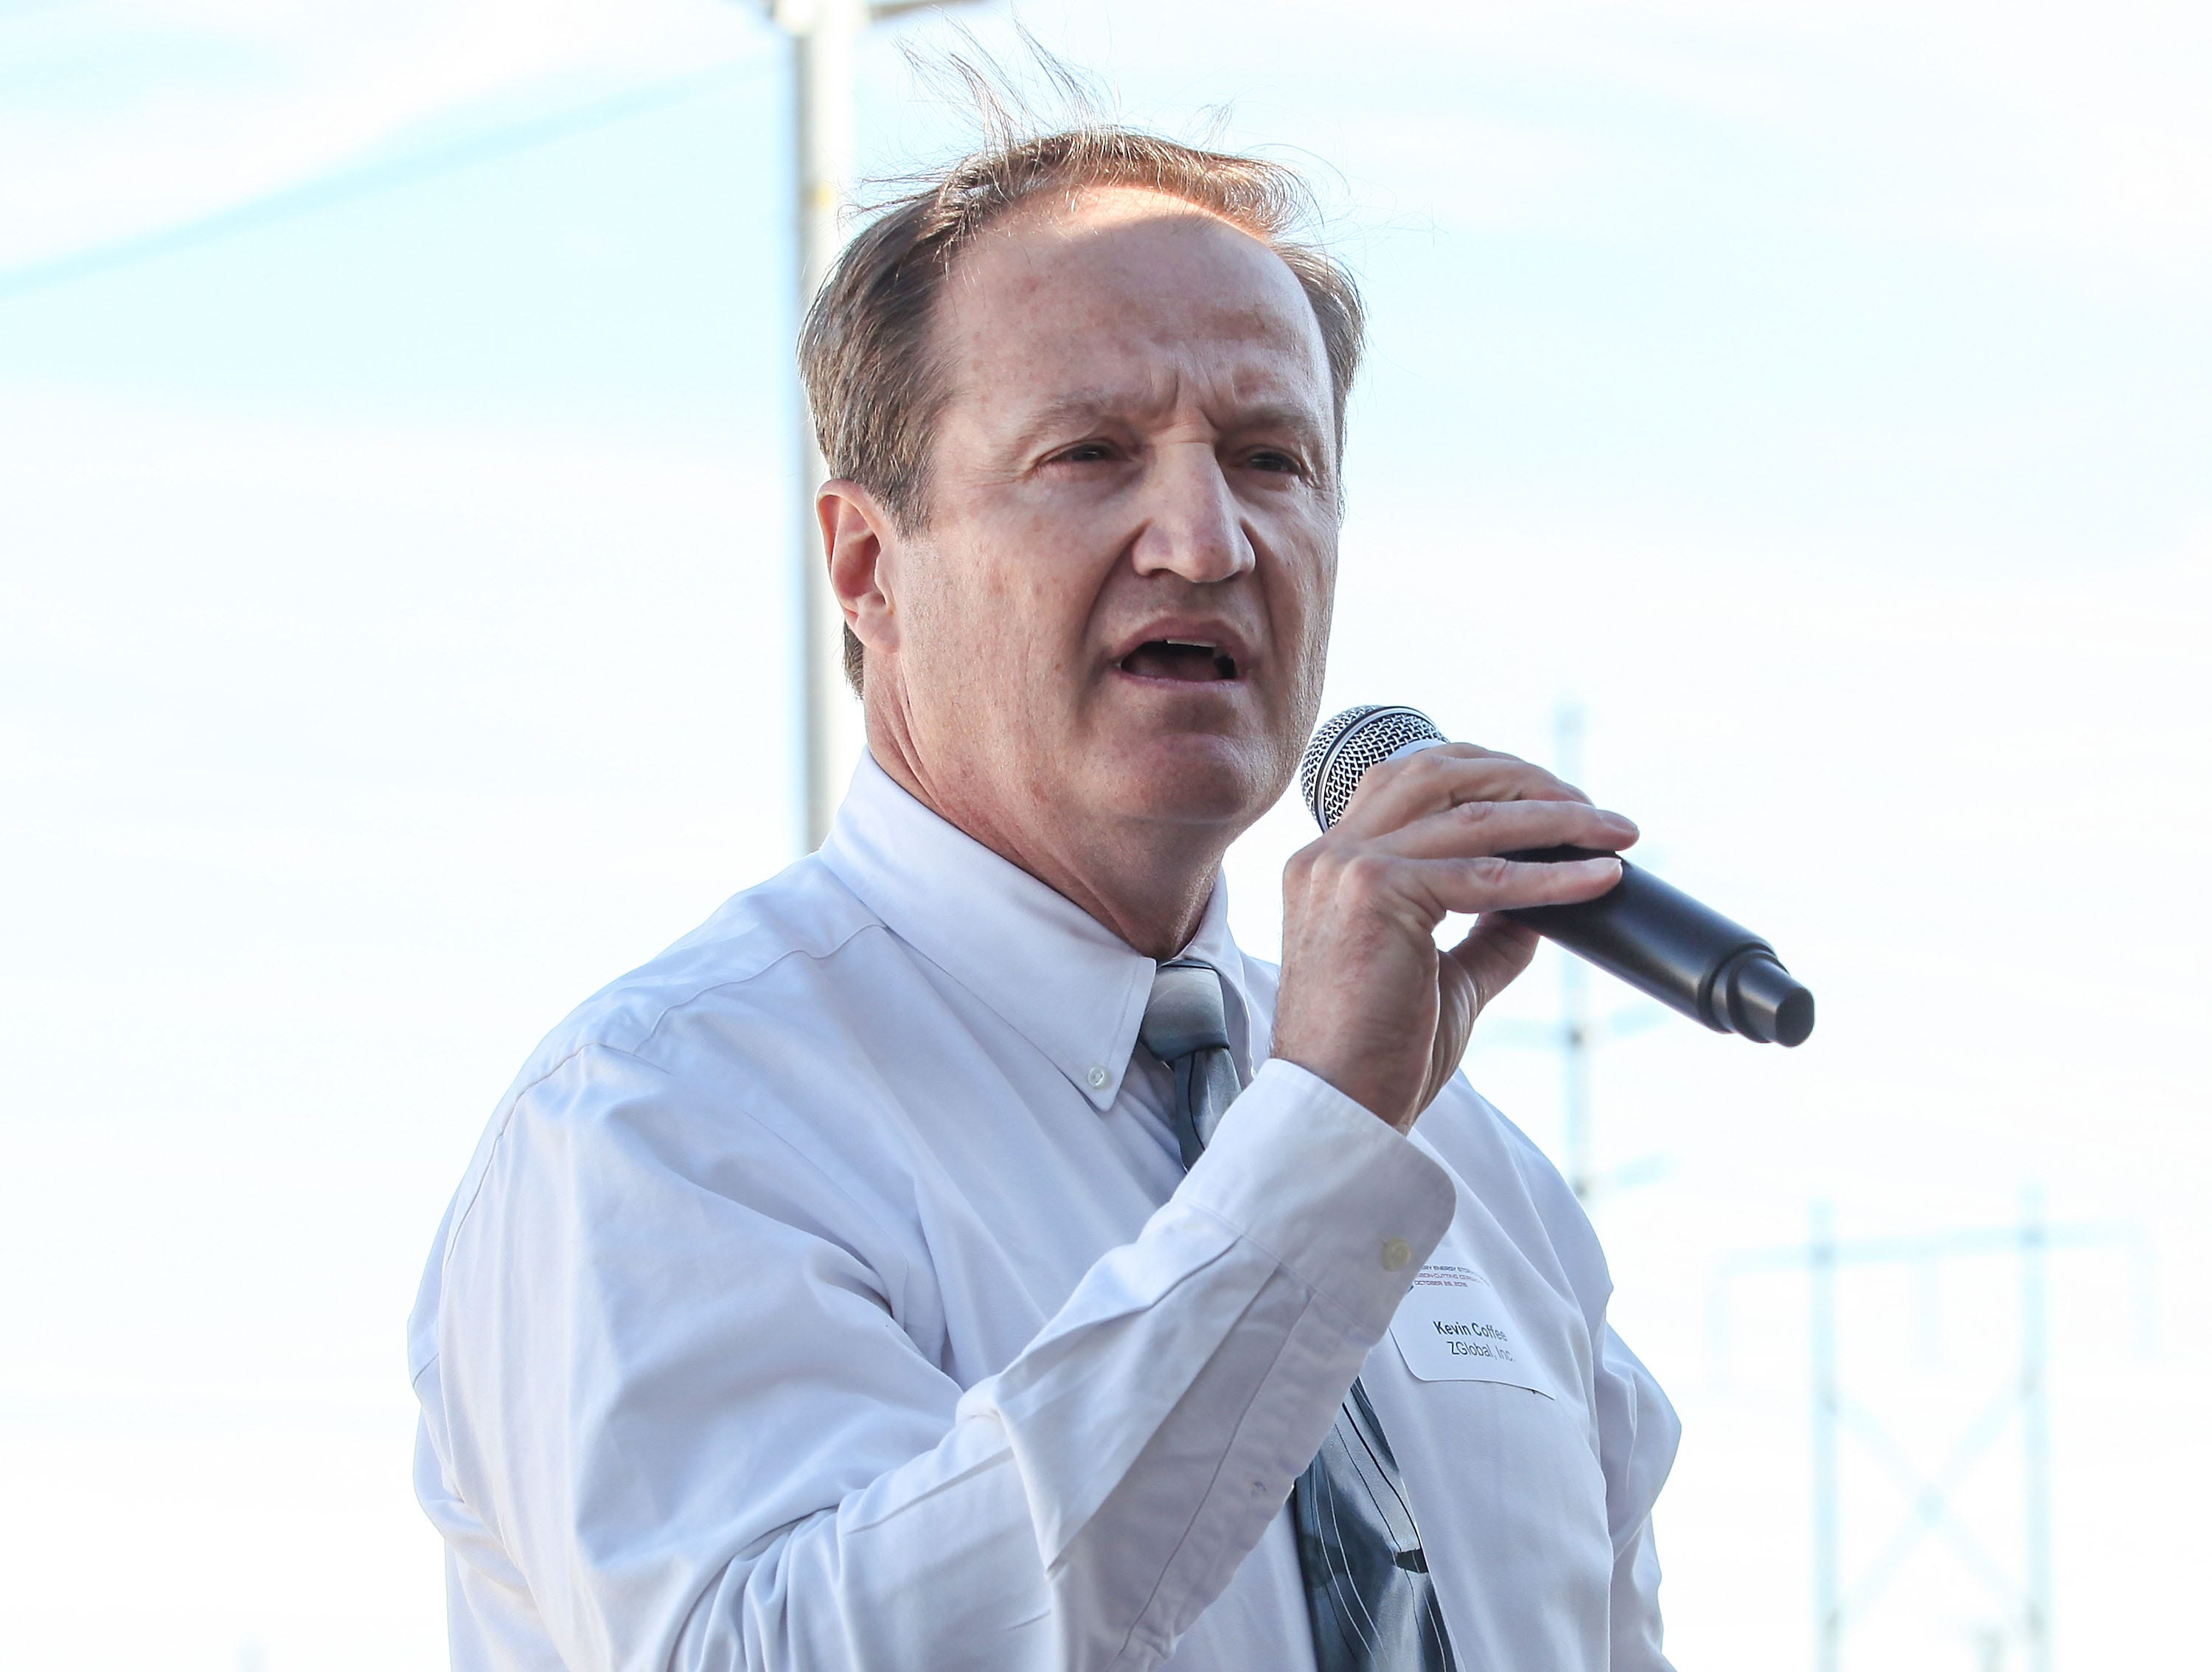 ZGlobal vice president Kevin Coffee speaks at the dedication ceremony for the Imperial Irrigation District's battery storage project on Oct. 26, 2016.